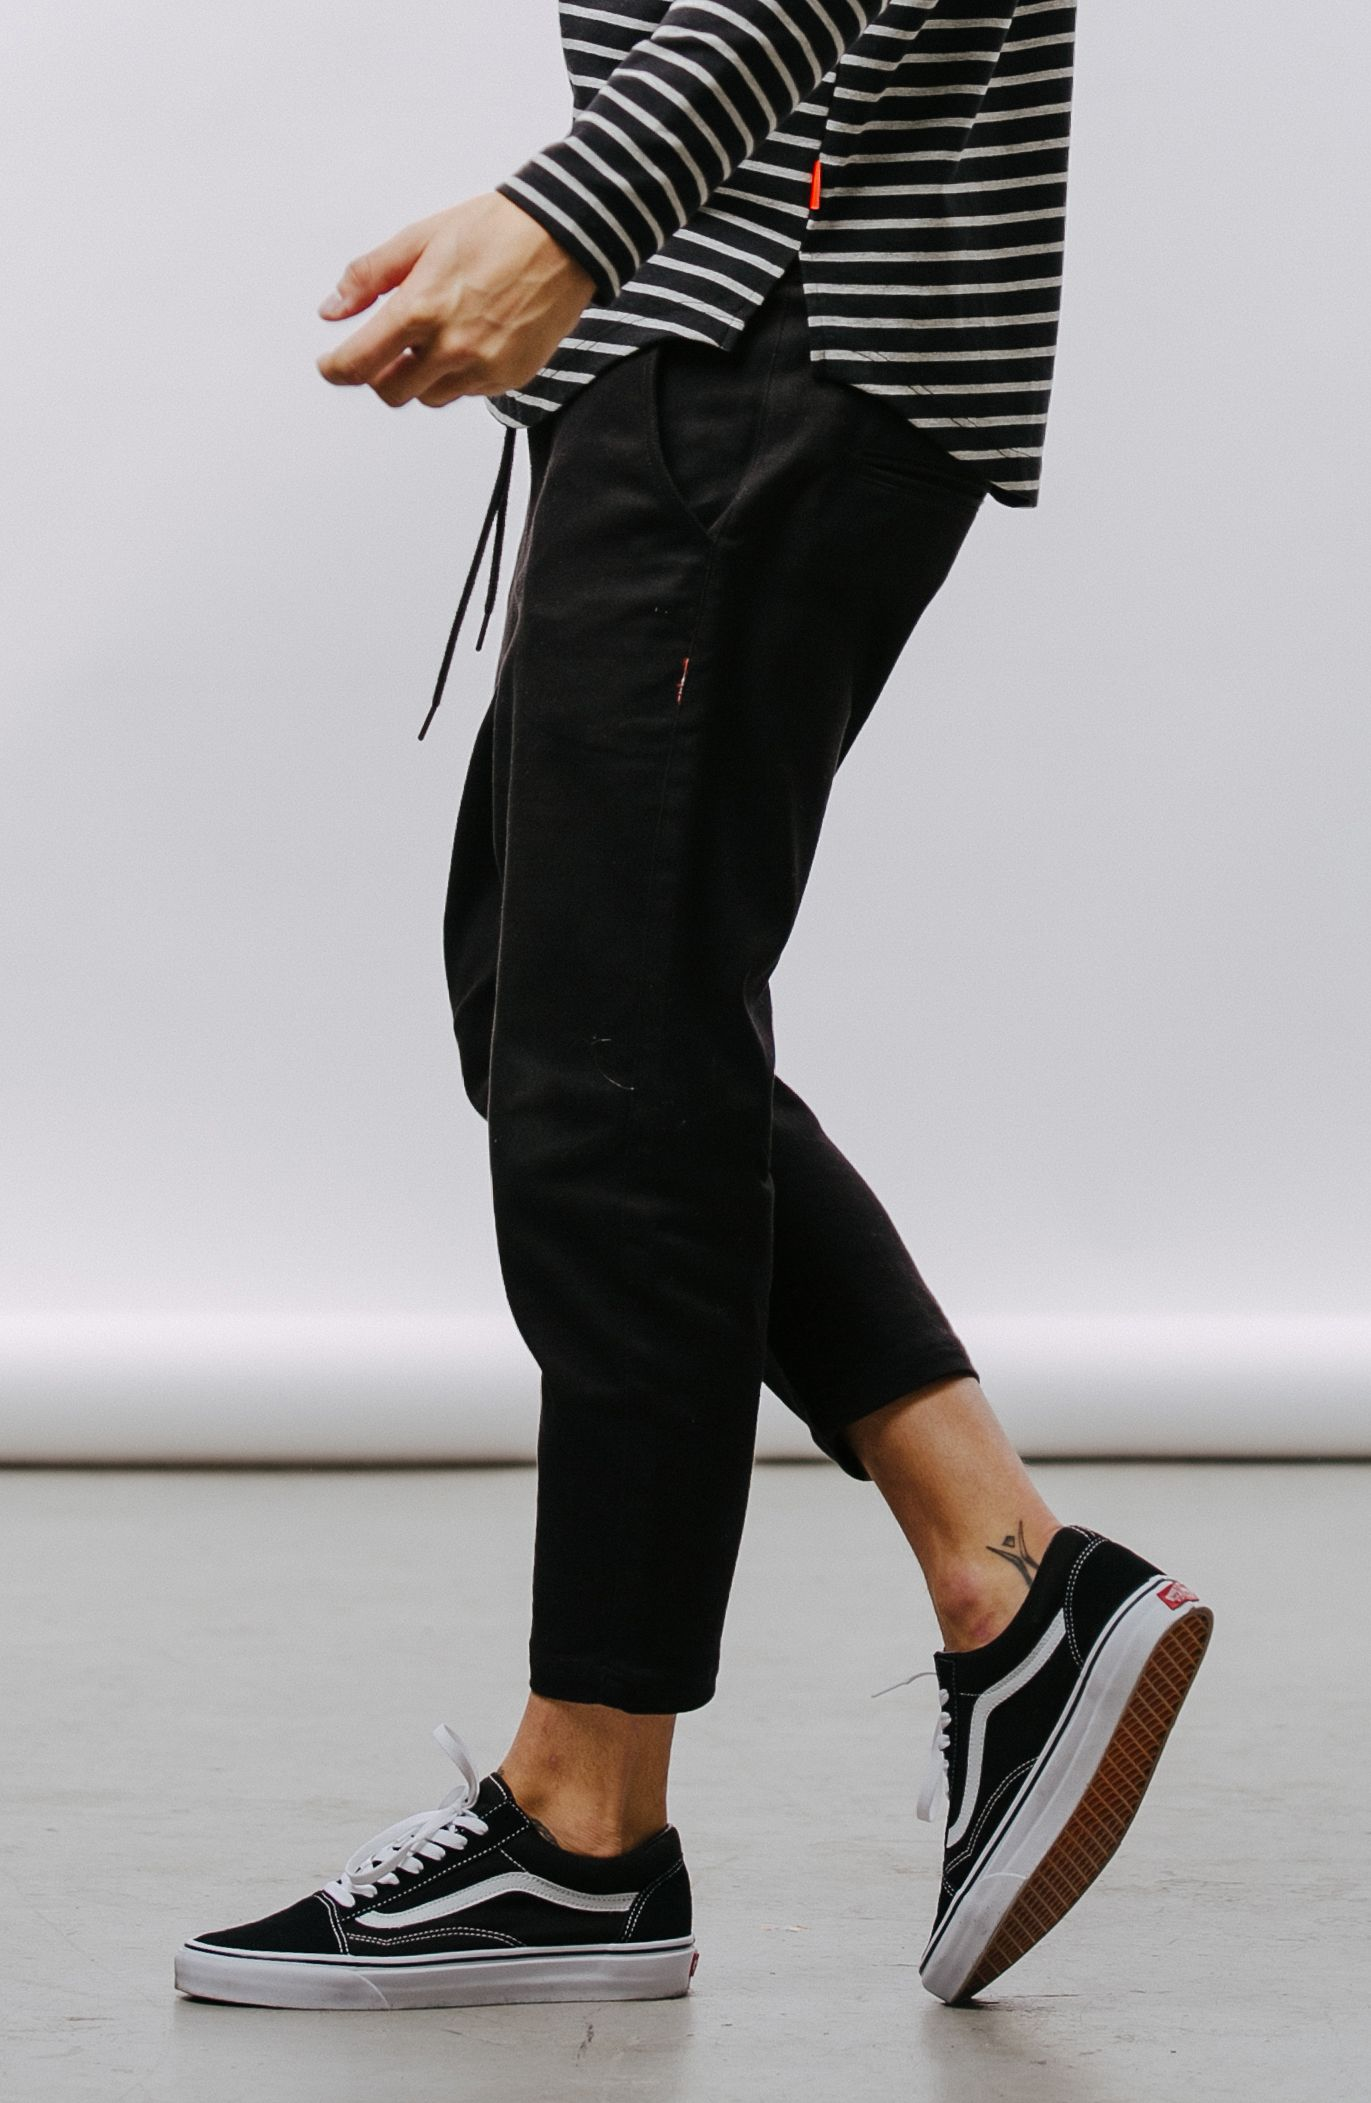 The next style of pants that you need now: The Publish x JT